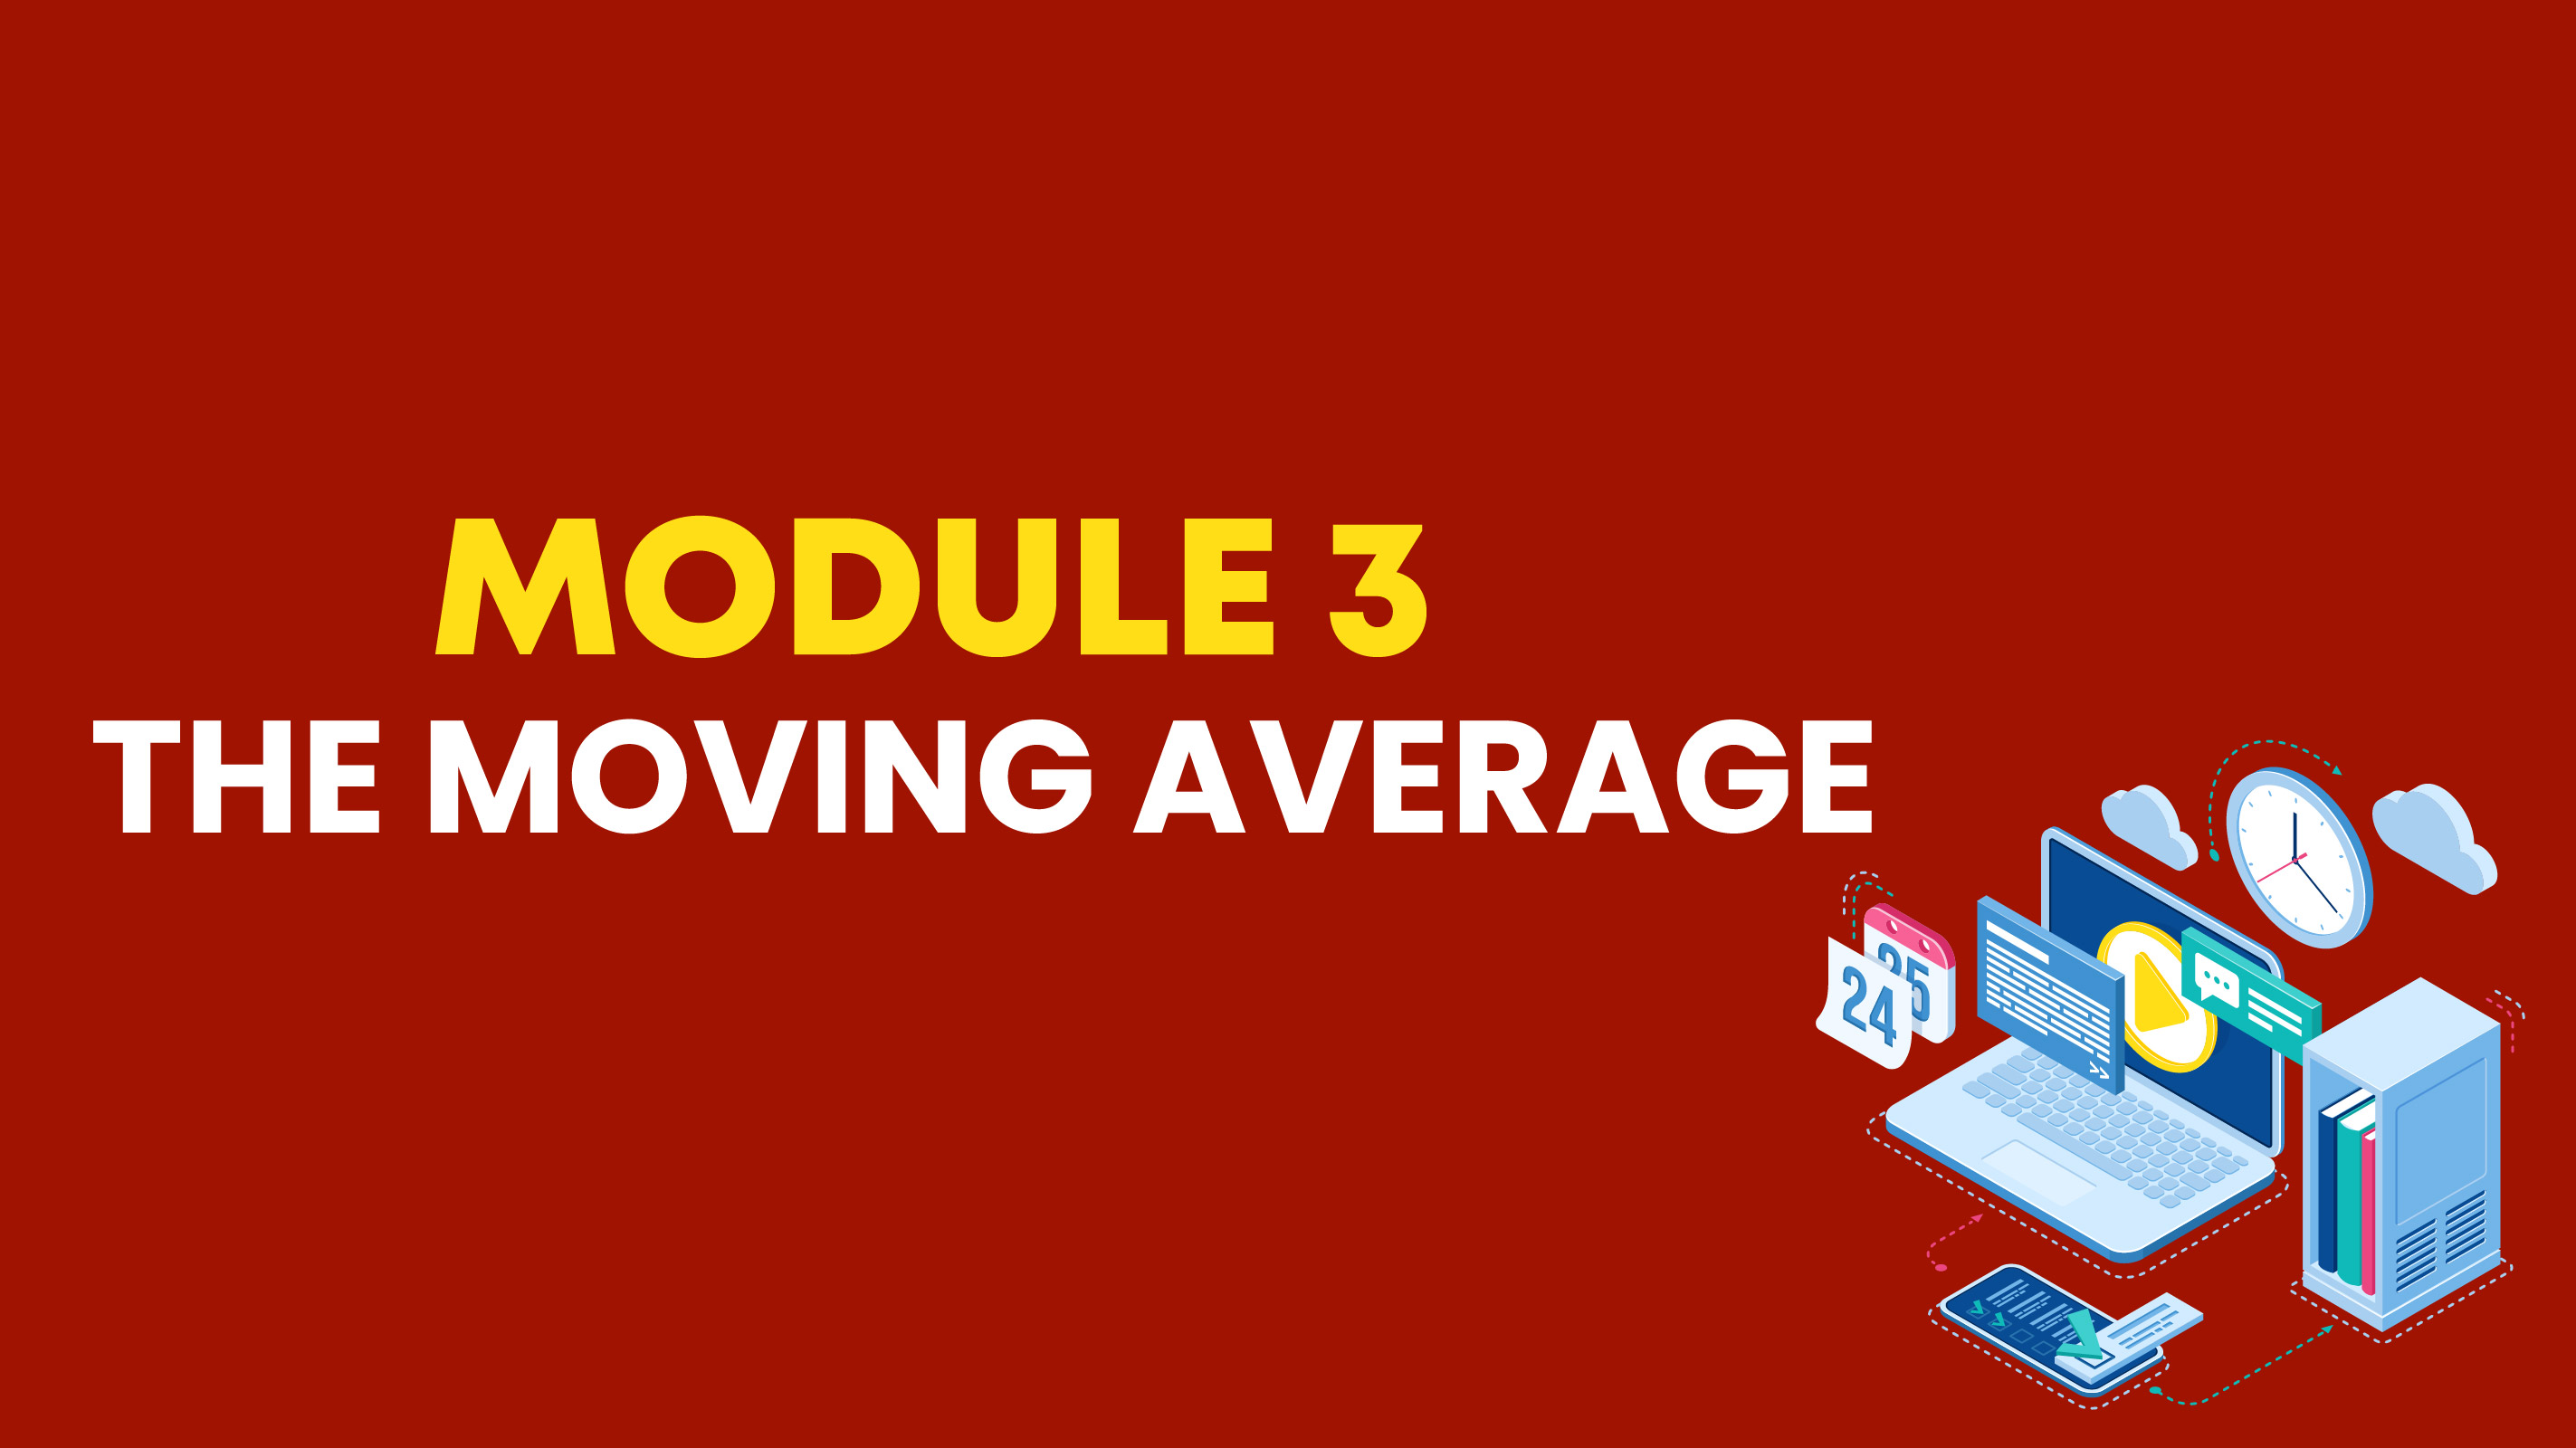 Module 3: The Moving Average